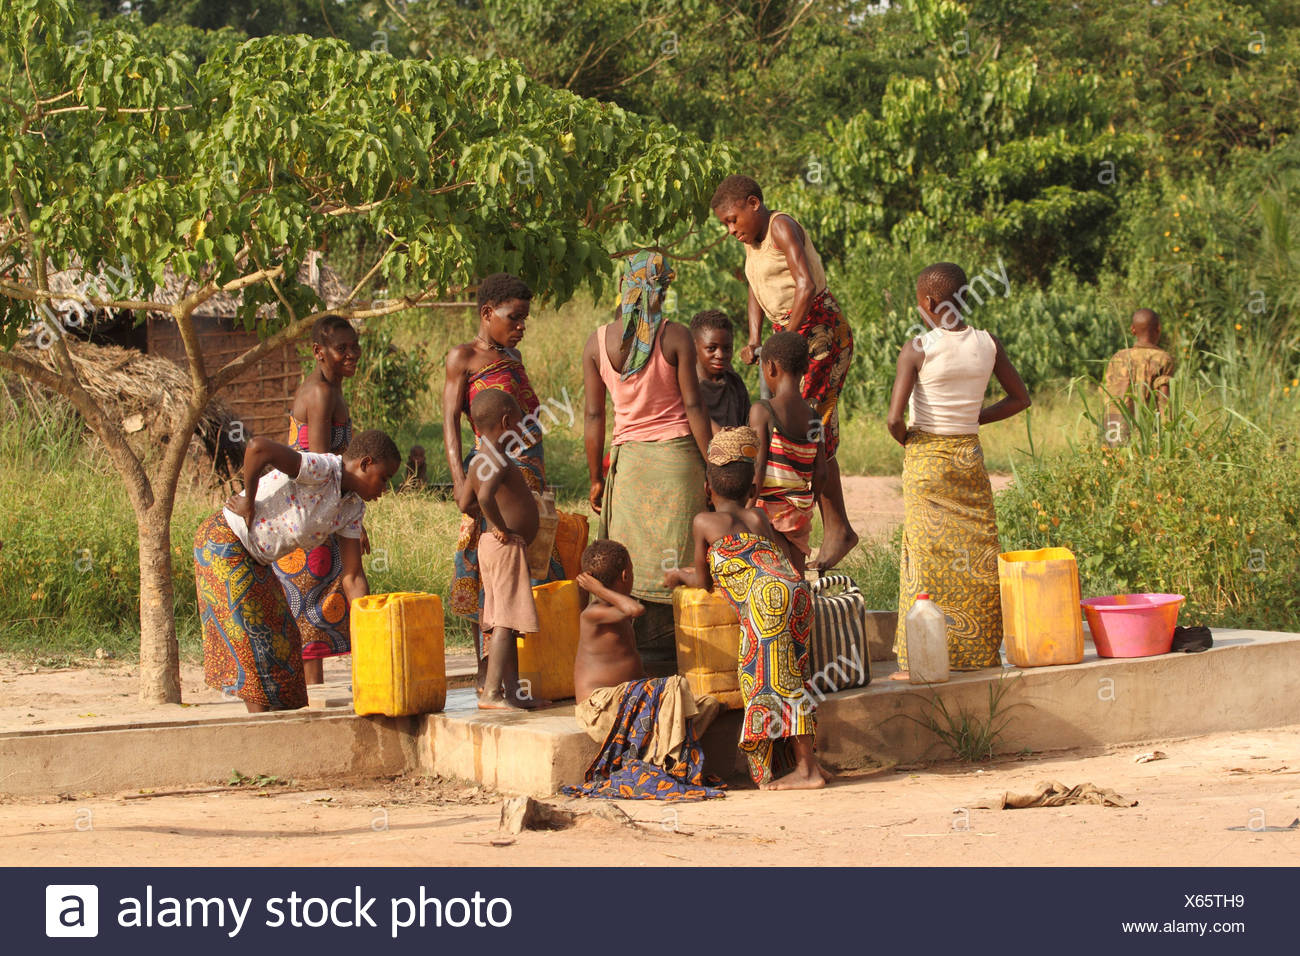 ethnic, minority, indigenous, person, people, pygmies, pygmy, Baka pygmies, well, Sangha, Dzanga Sangha, Bayanga, Congo Basin, r - Stock Image